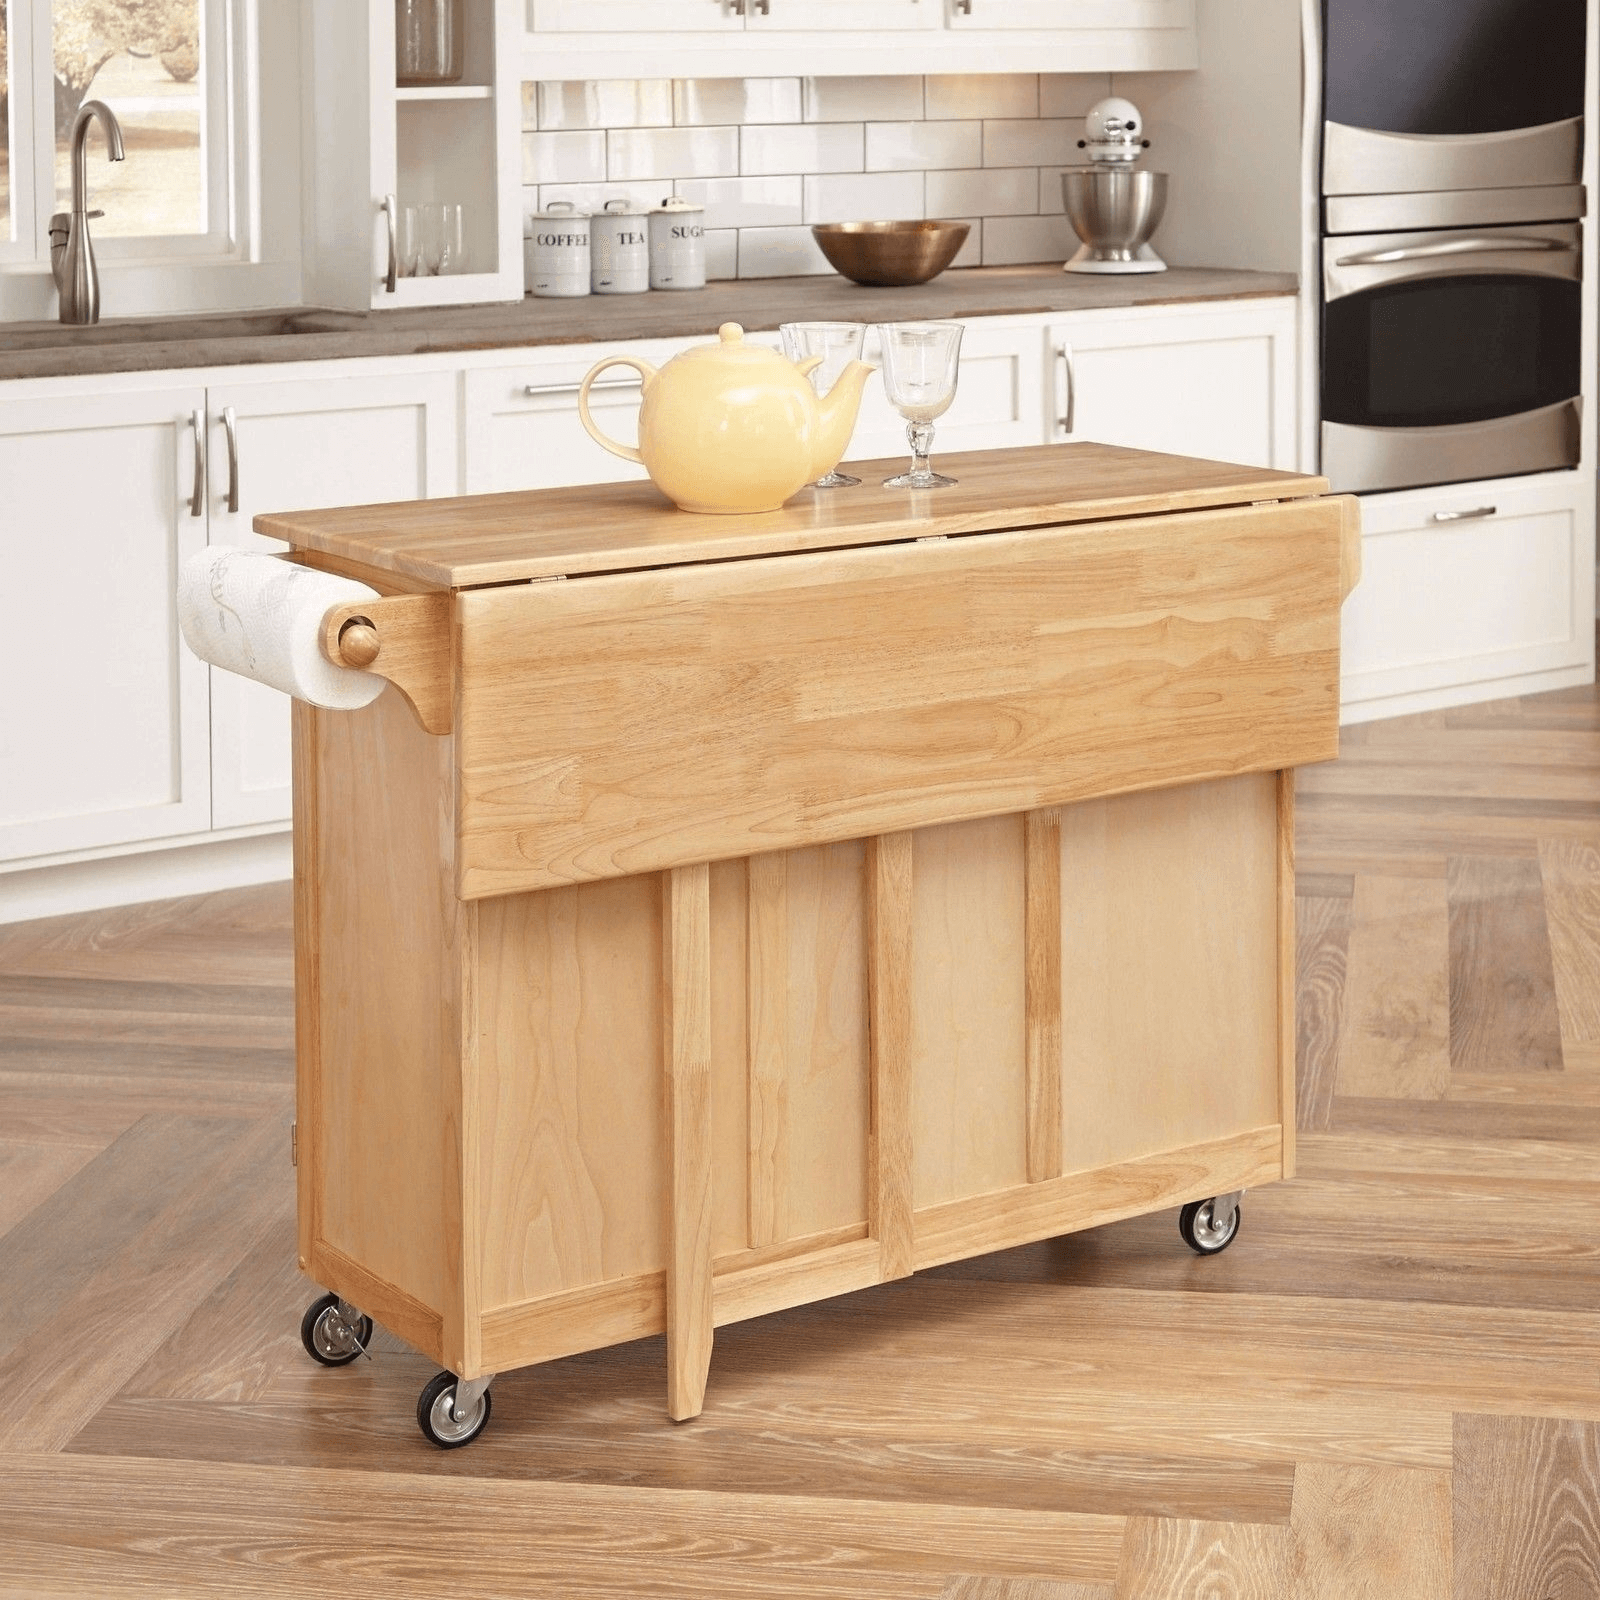 The Folded Table Kitchen island for small spaces